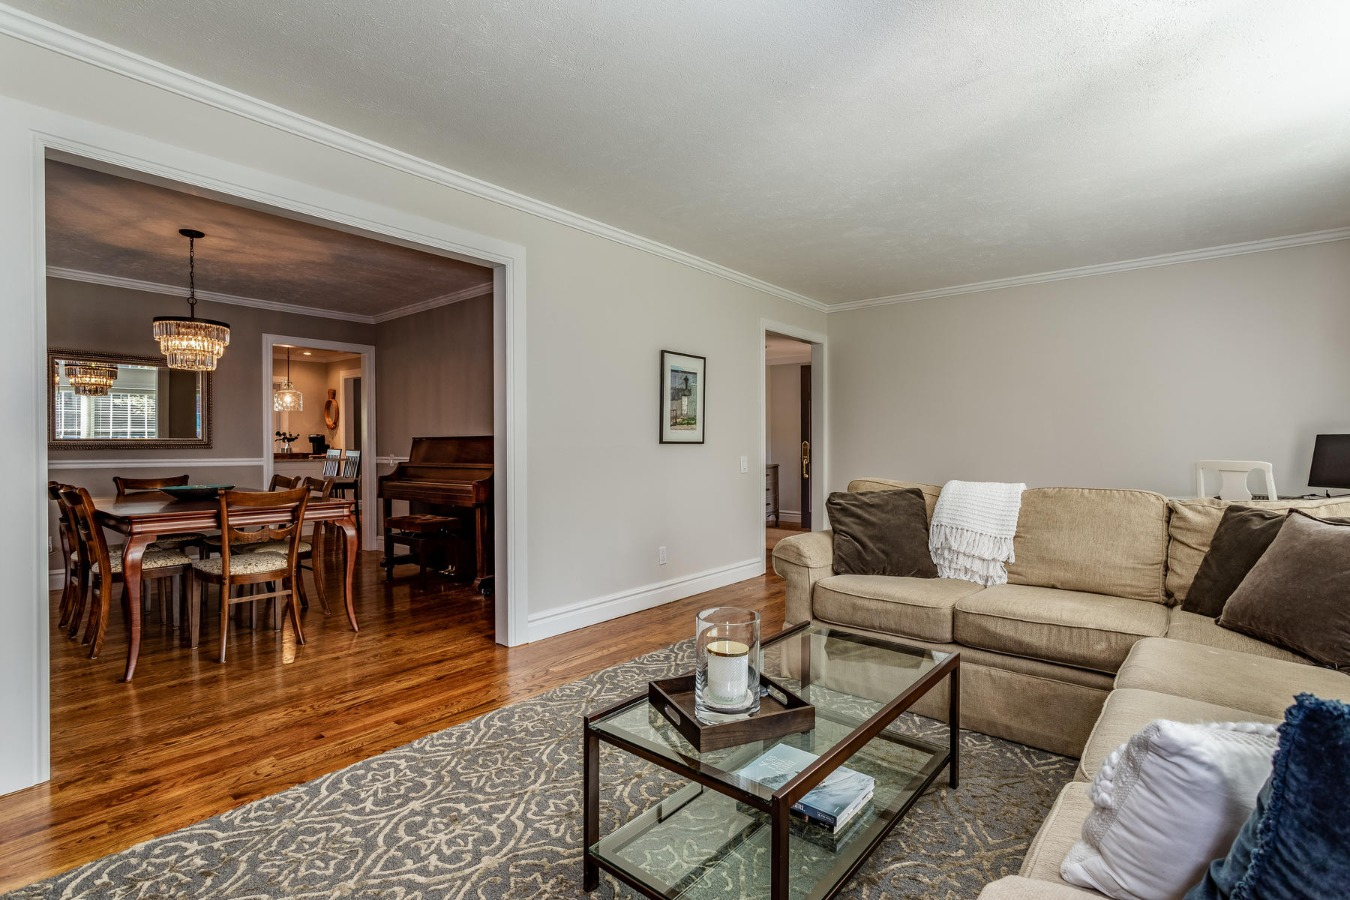 Living Room to Formal Dining Room View